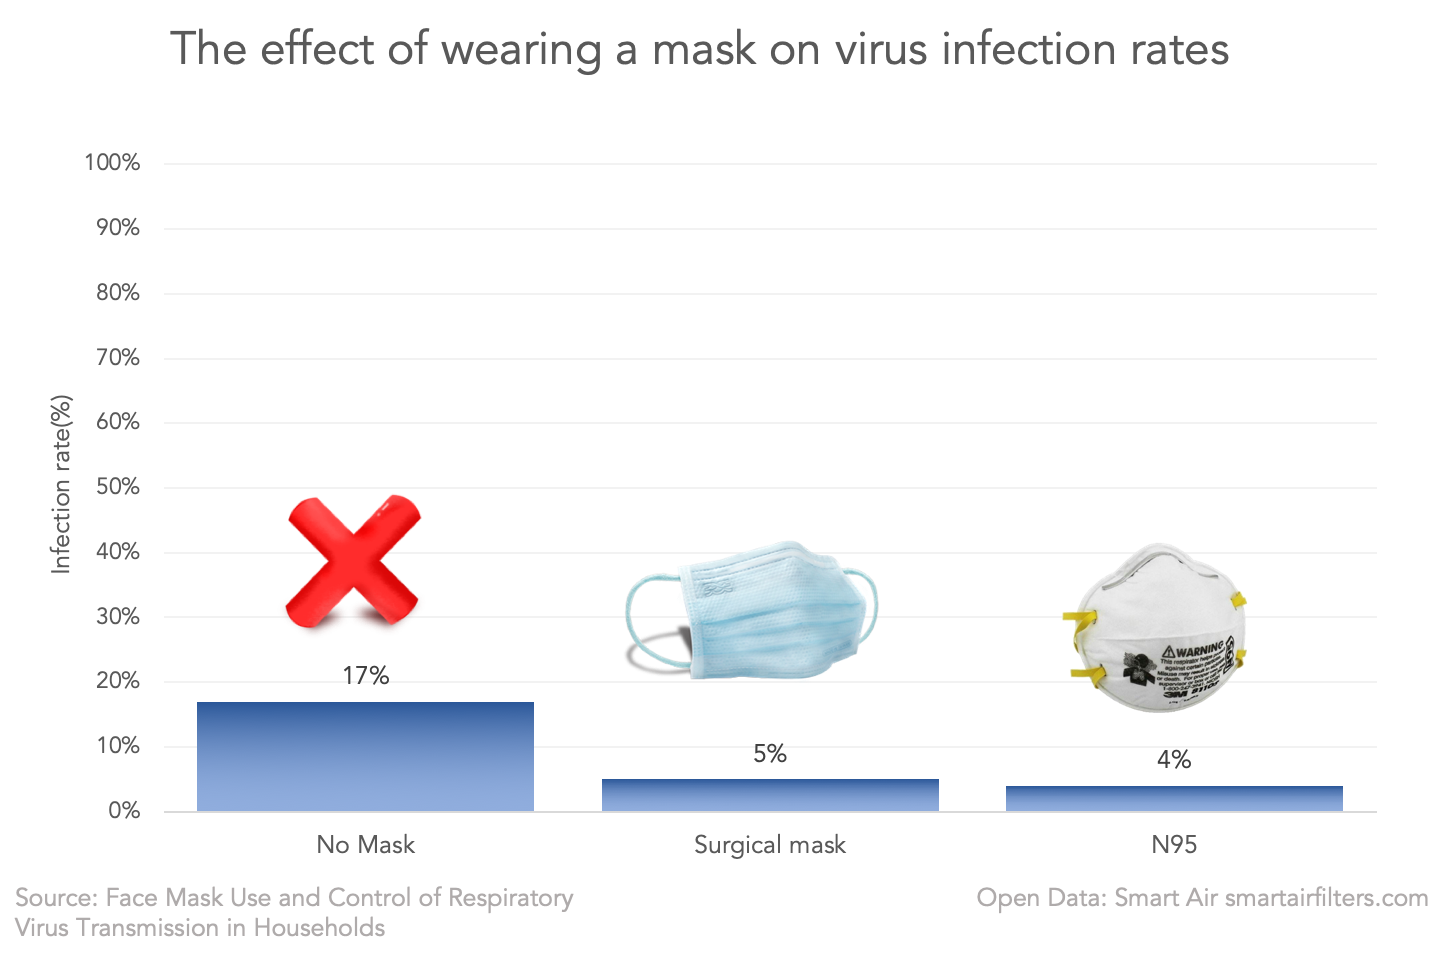 N95 masks and surgical masks prevent infection with the virus